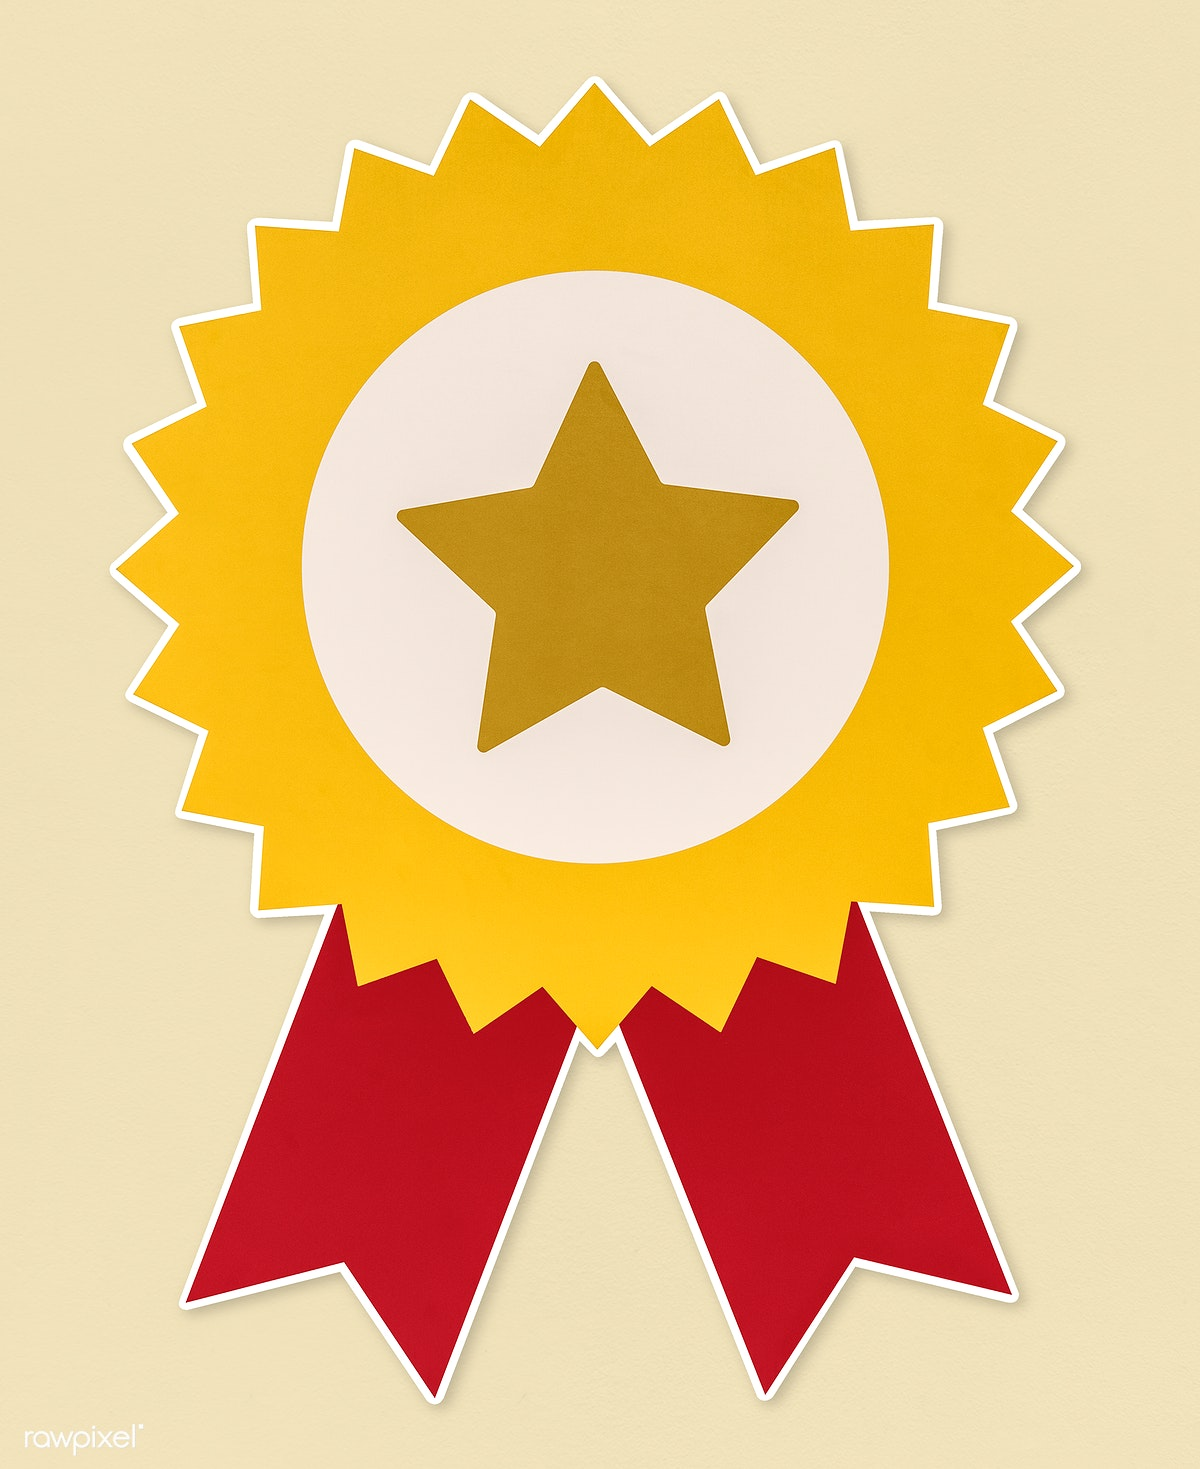 Download premium image of Golden star prize badge with red ribbons 514491